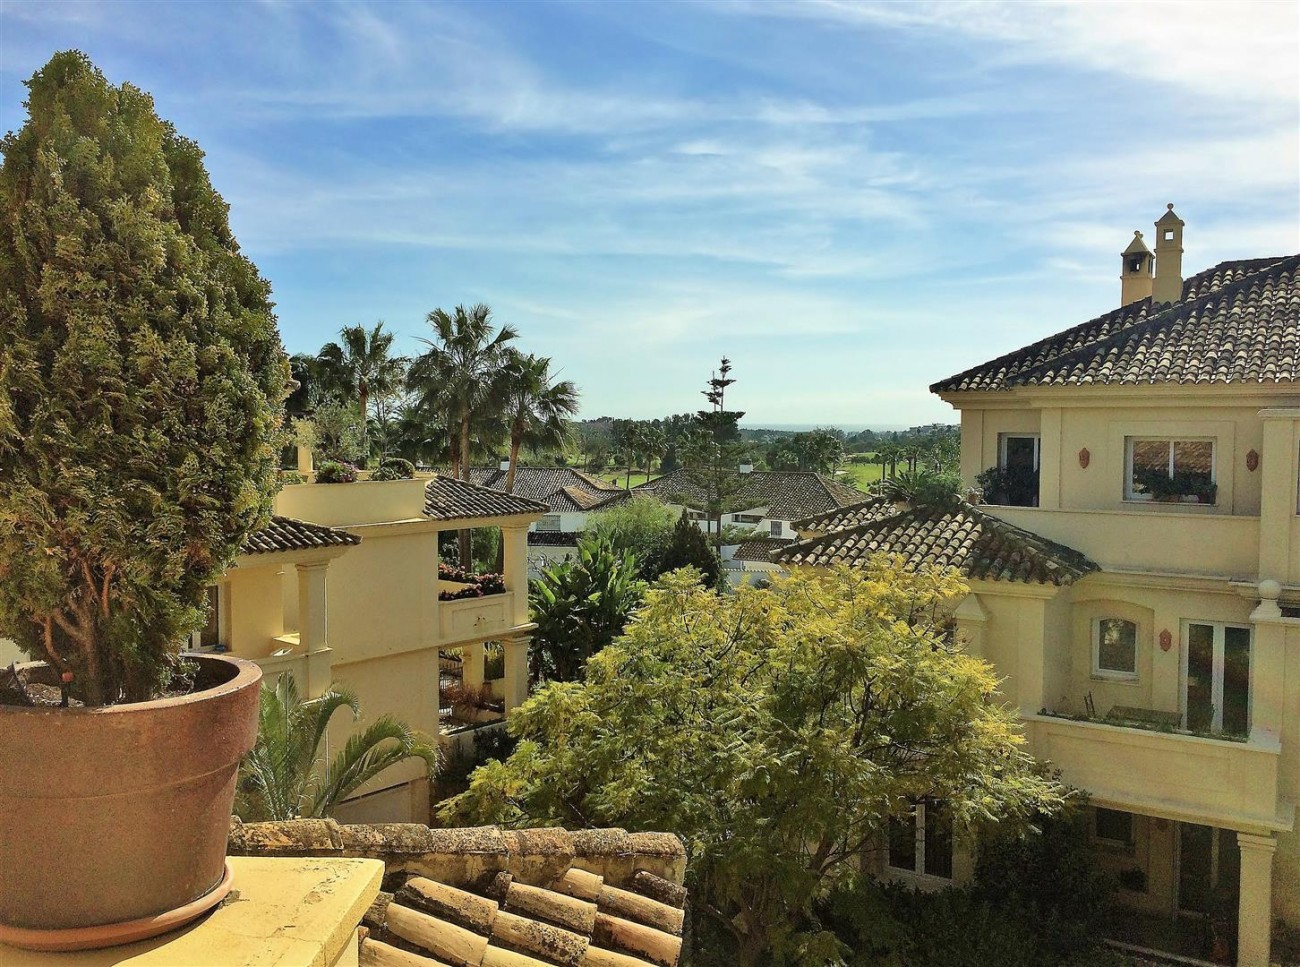 Penthouse for sale Las Alamandas Nueva Andalucia Marbella Spain (18) (Large)